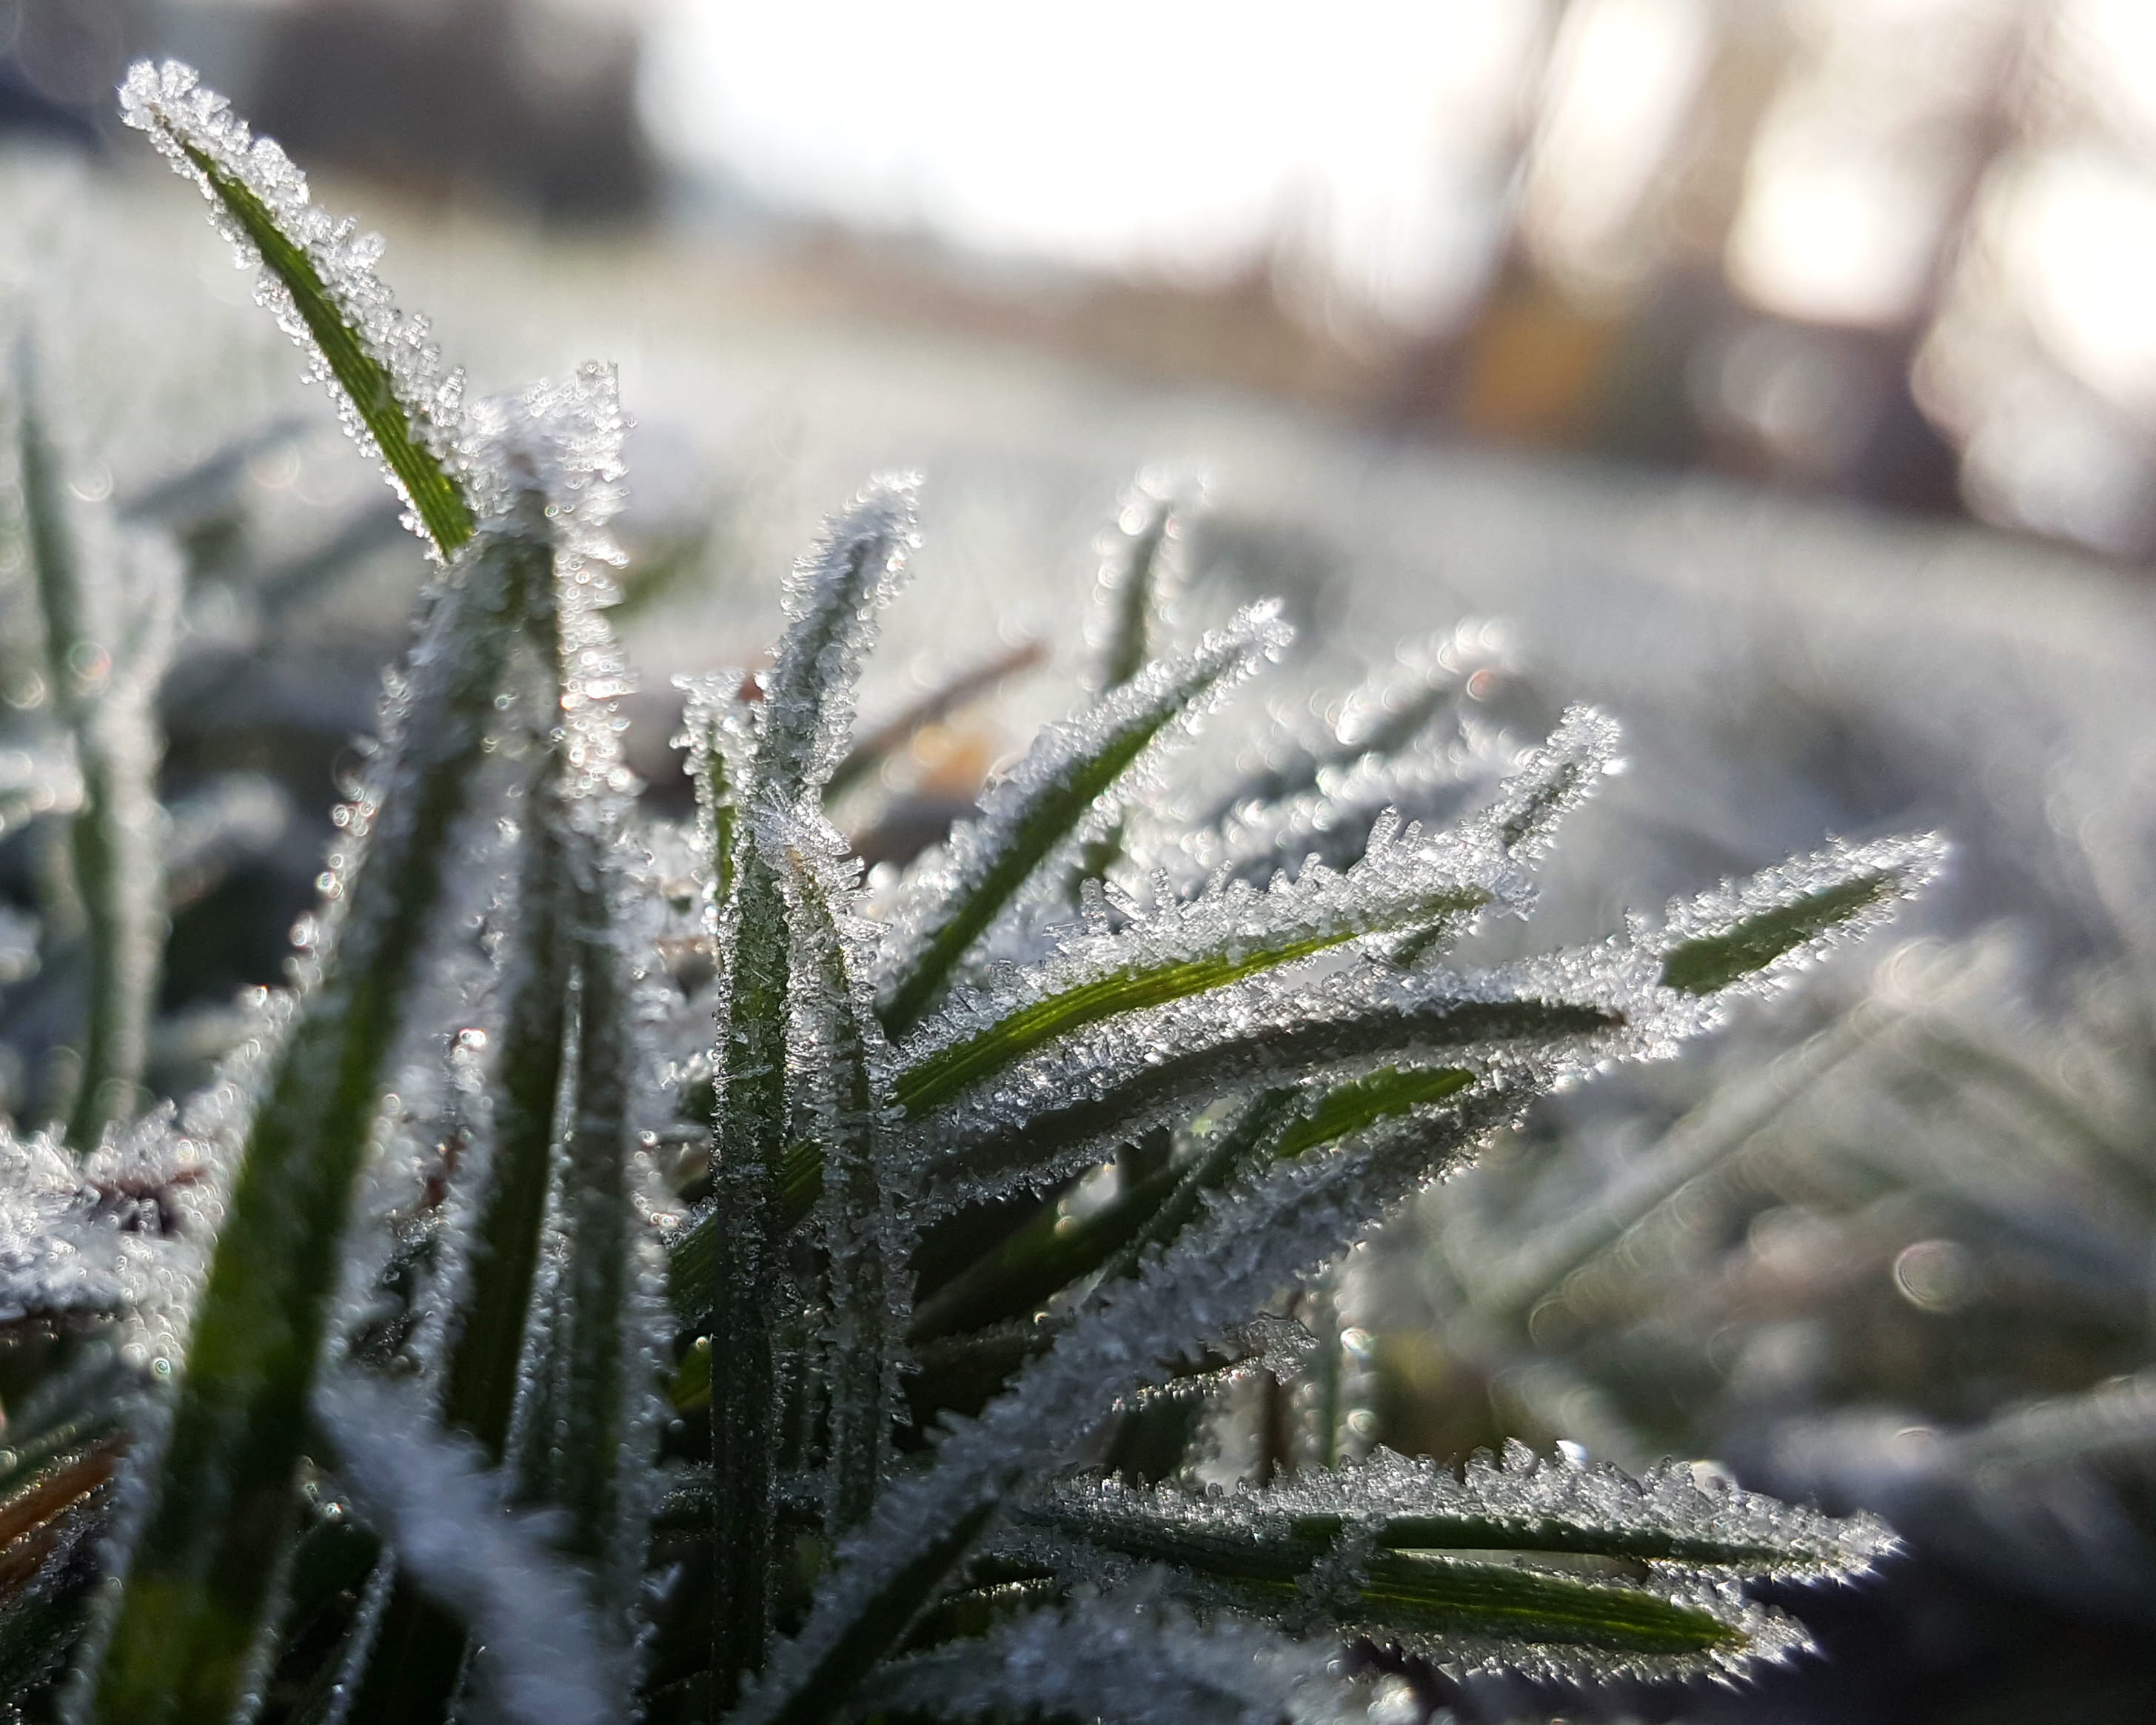 Winter Lawn Care: Ice Damage - Featured Image